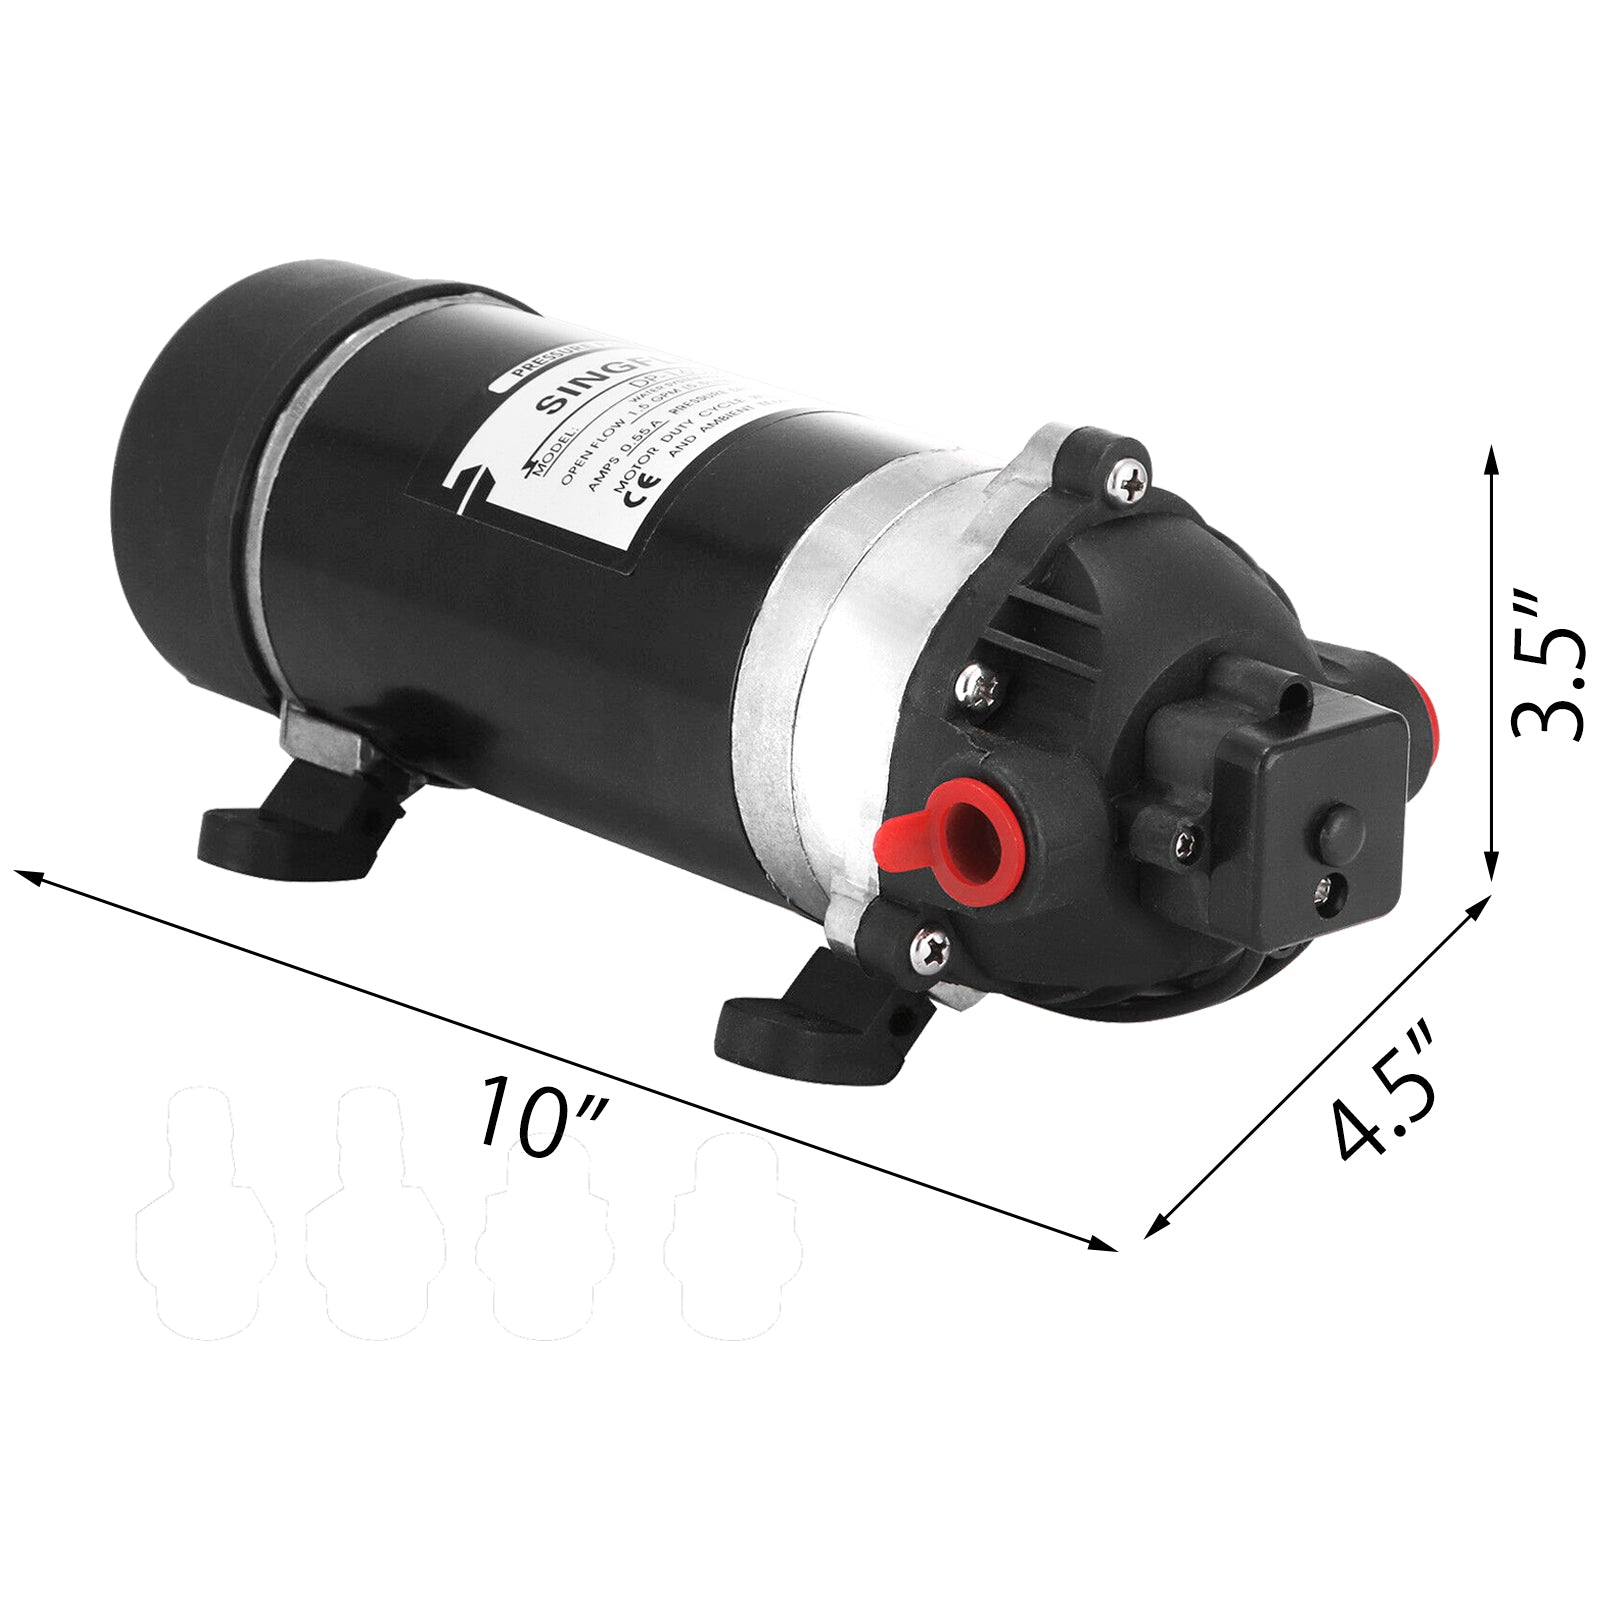 110-120v 160psi High Pressure Diaphragm Water Pump 1.2gpm Low Noise Bargain